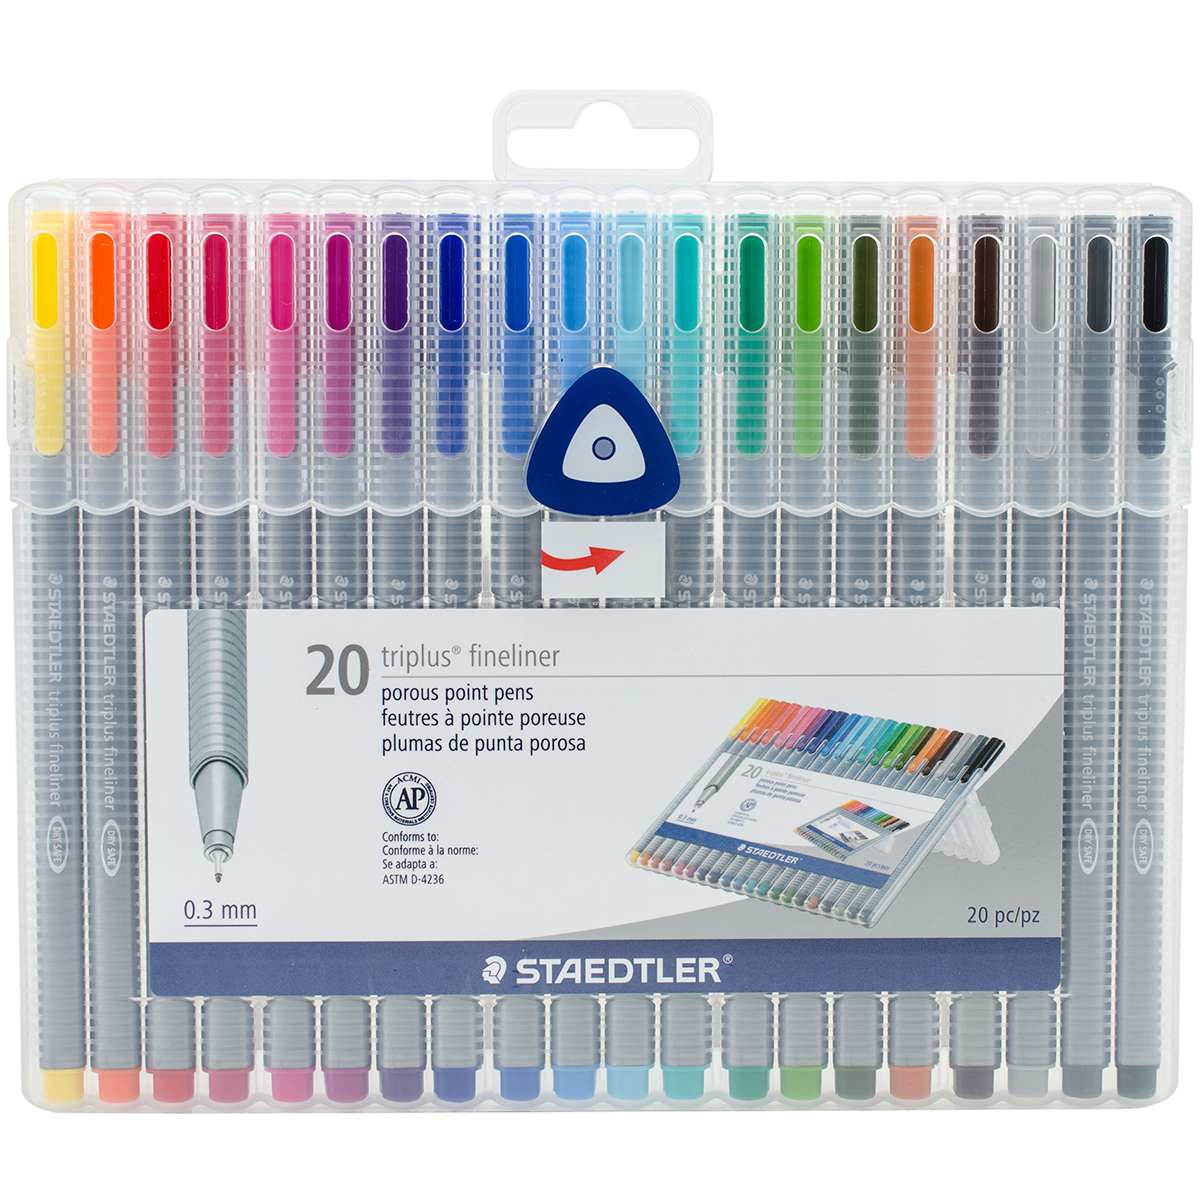 triplus Fineliner Marker, Super Fine, Water-Based, 20 Color Set